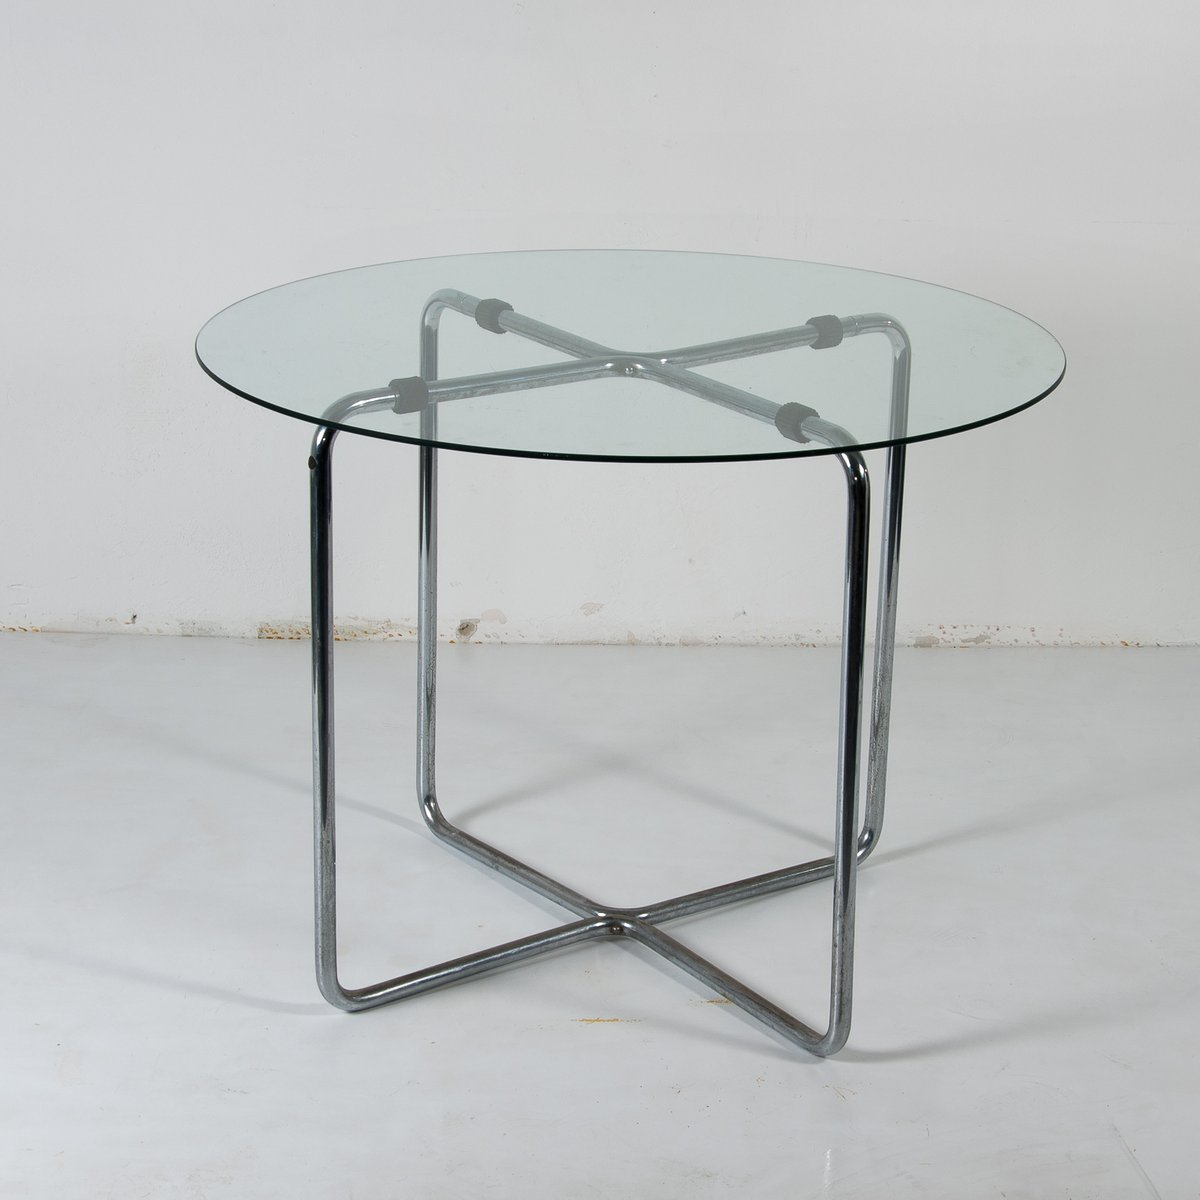 Nervi glass office desk Intended Glass Table By Marcel Breuer For Thonet 1930s Pamono Glass Table By Marcel Breuer For Thonet 1930s For Sale At Pamono